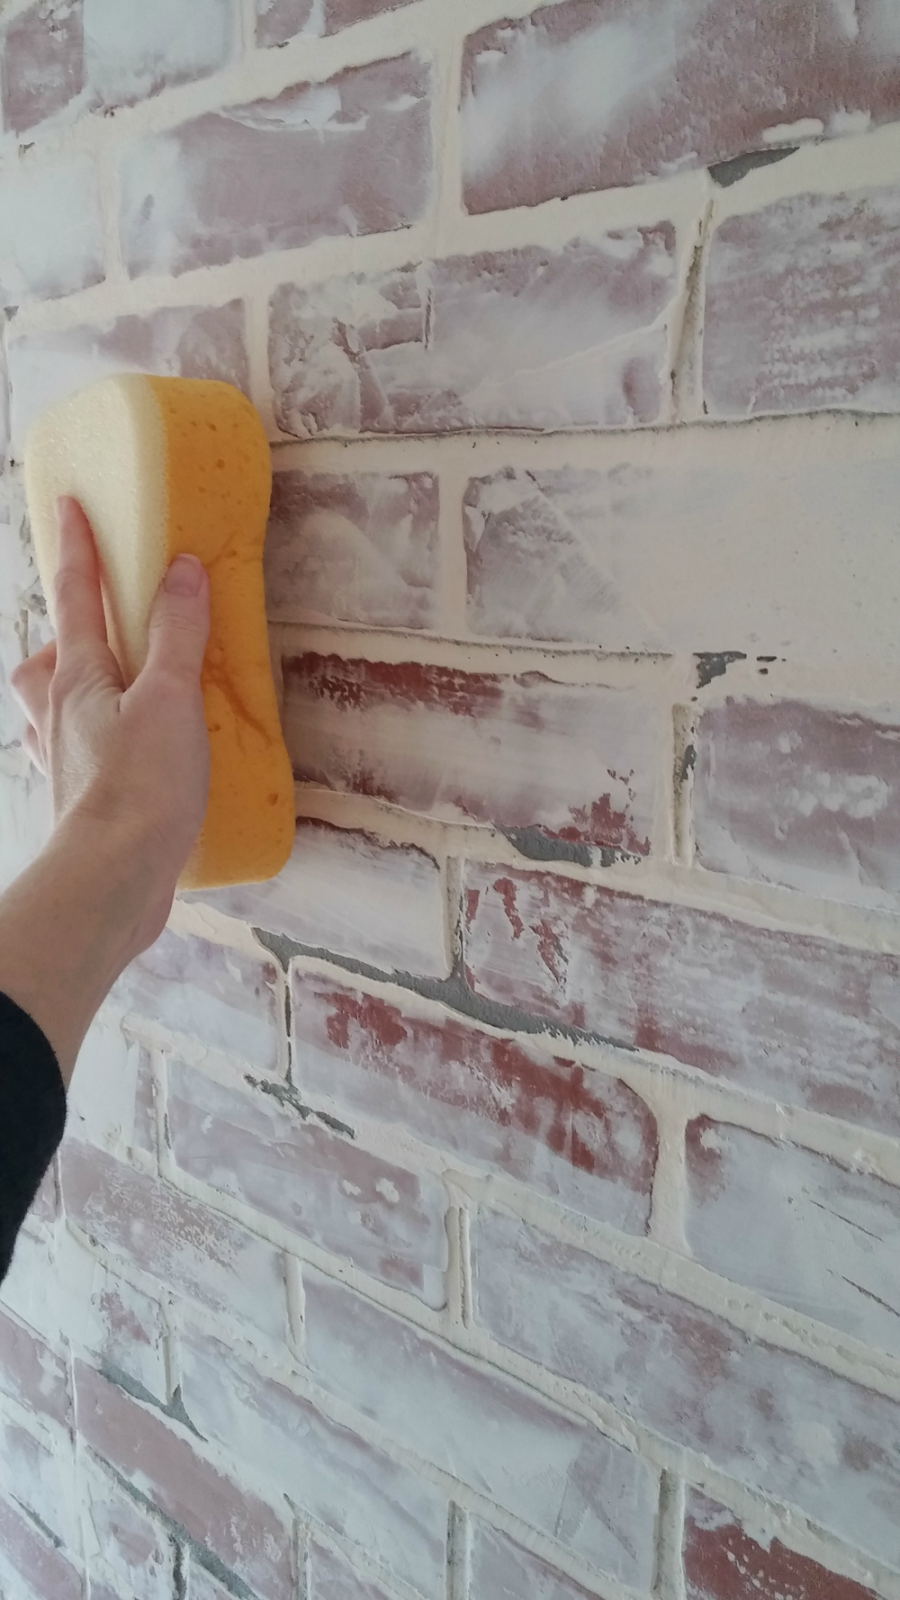 tiling sponge for German schmear